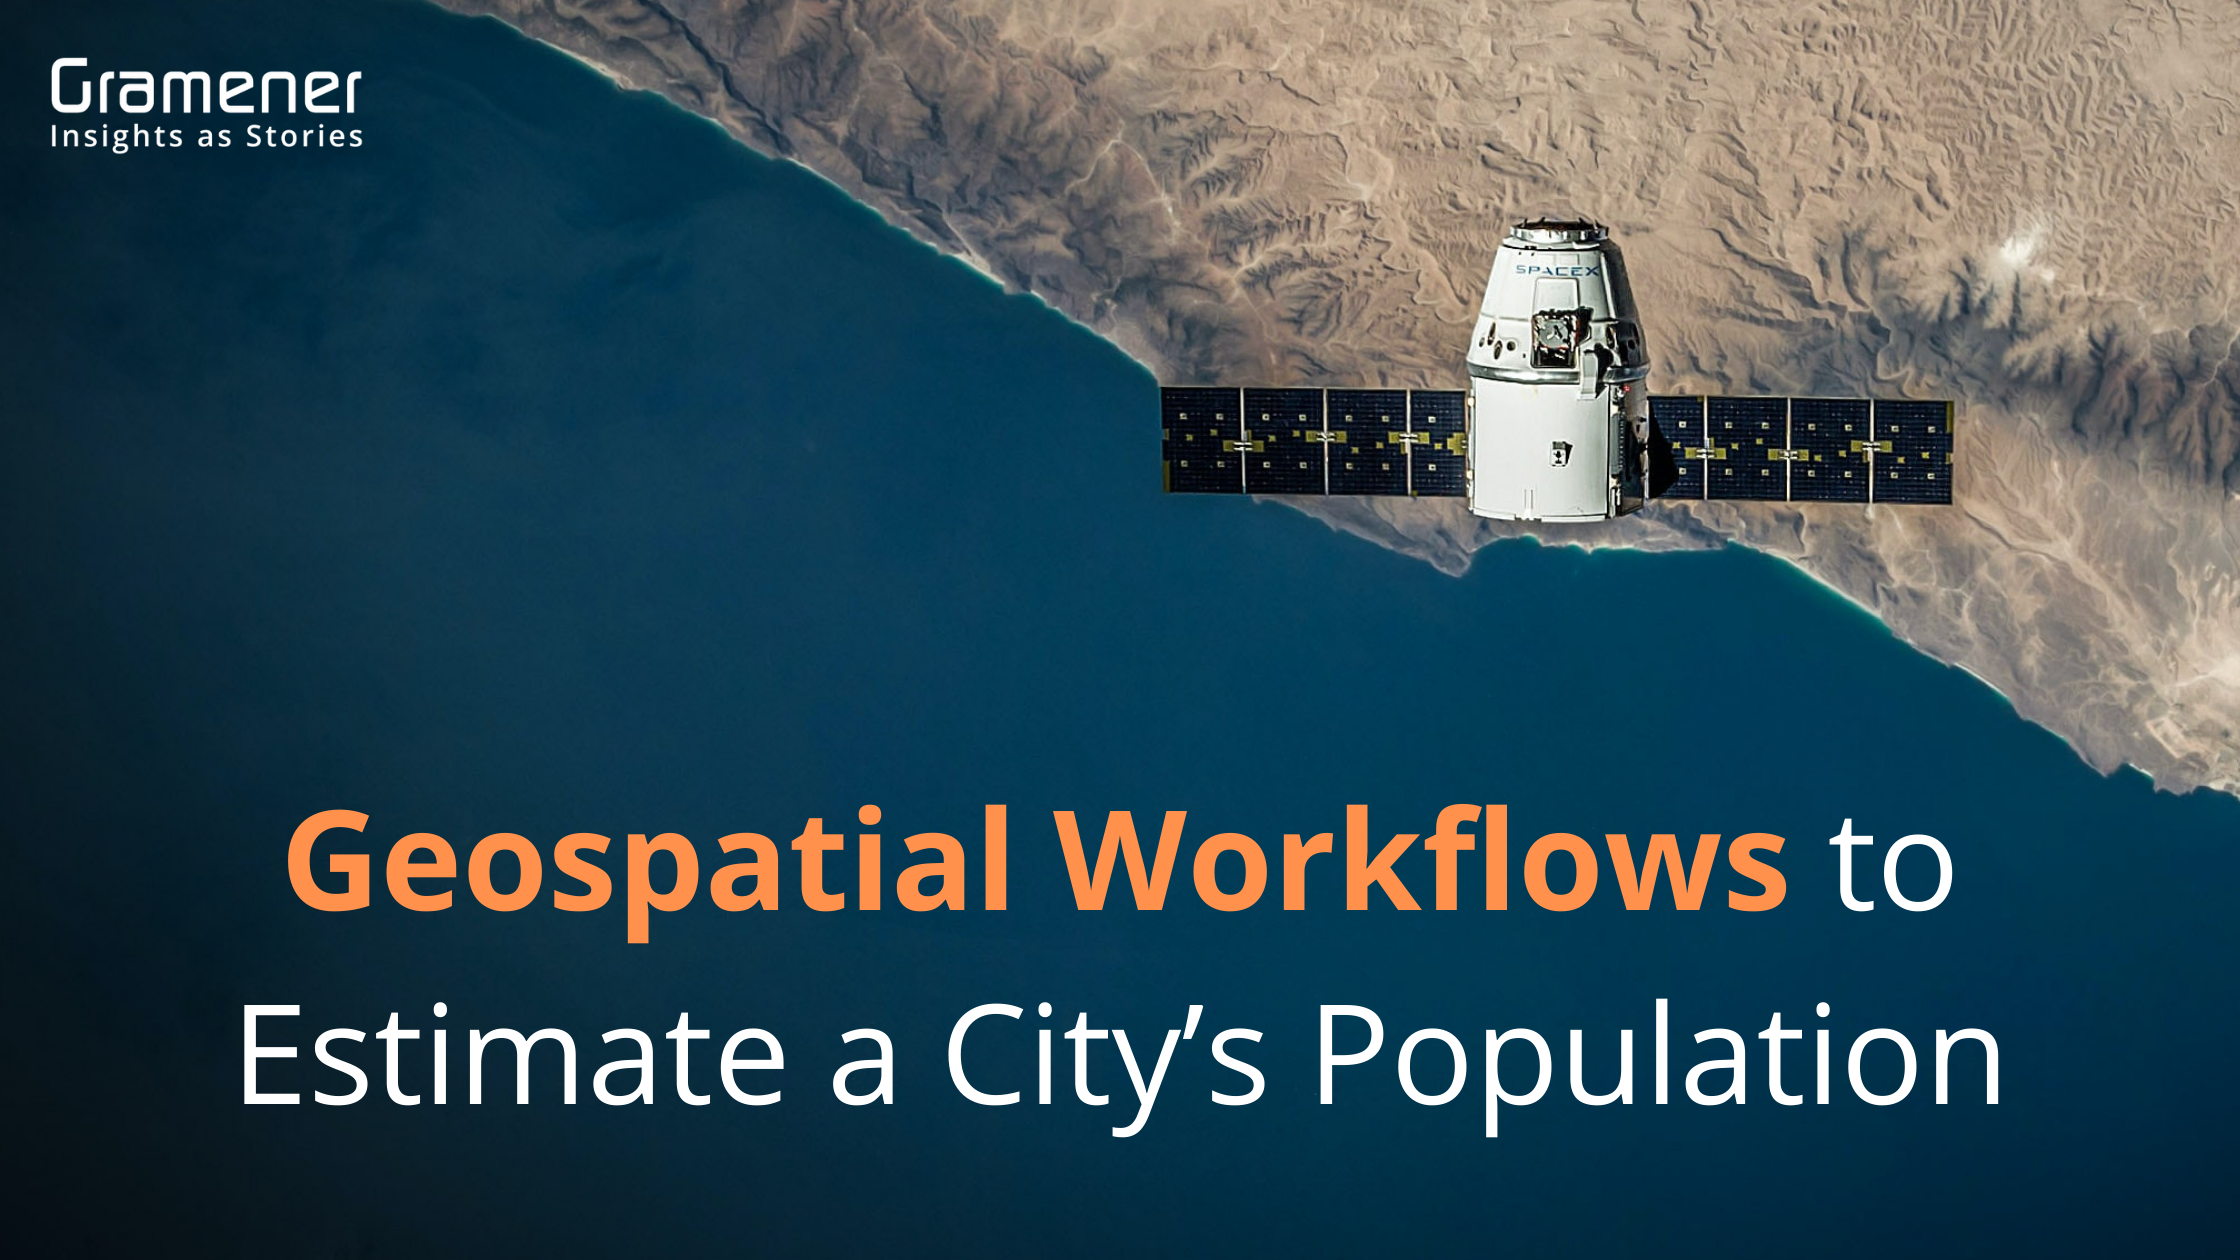 geospatial workflow to estimate a city's population using jupyter notebook